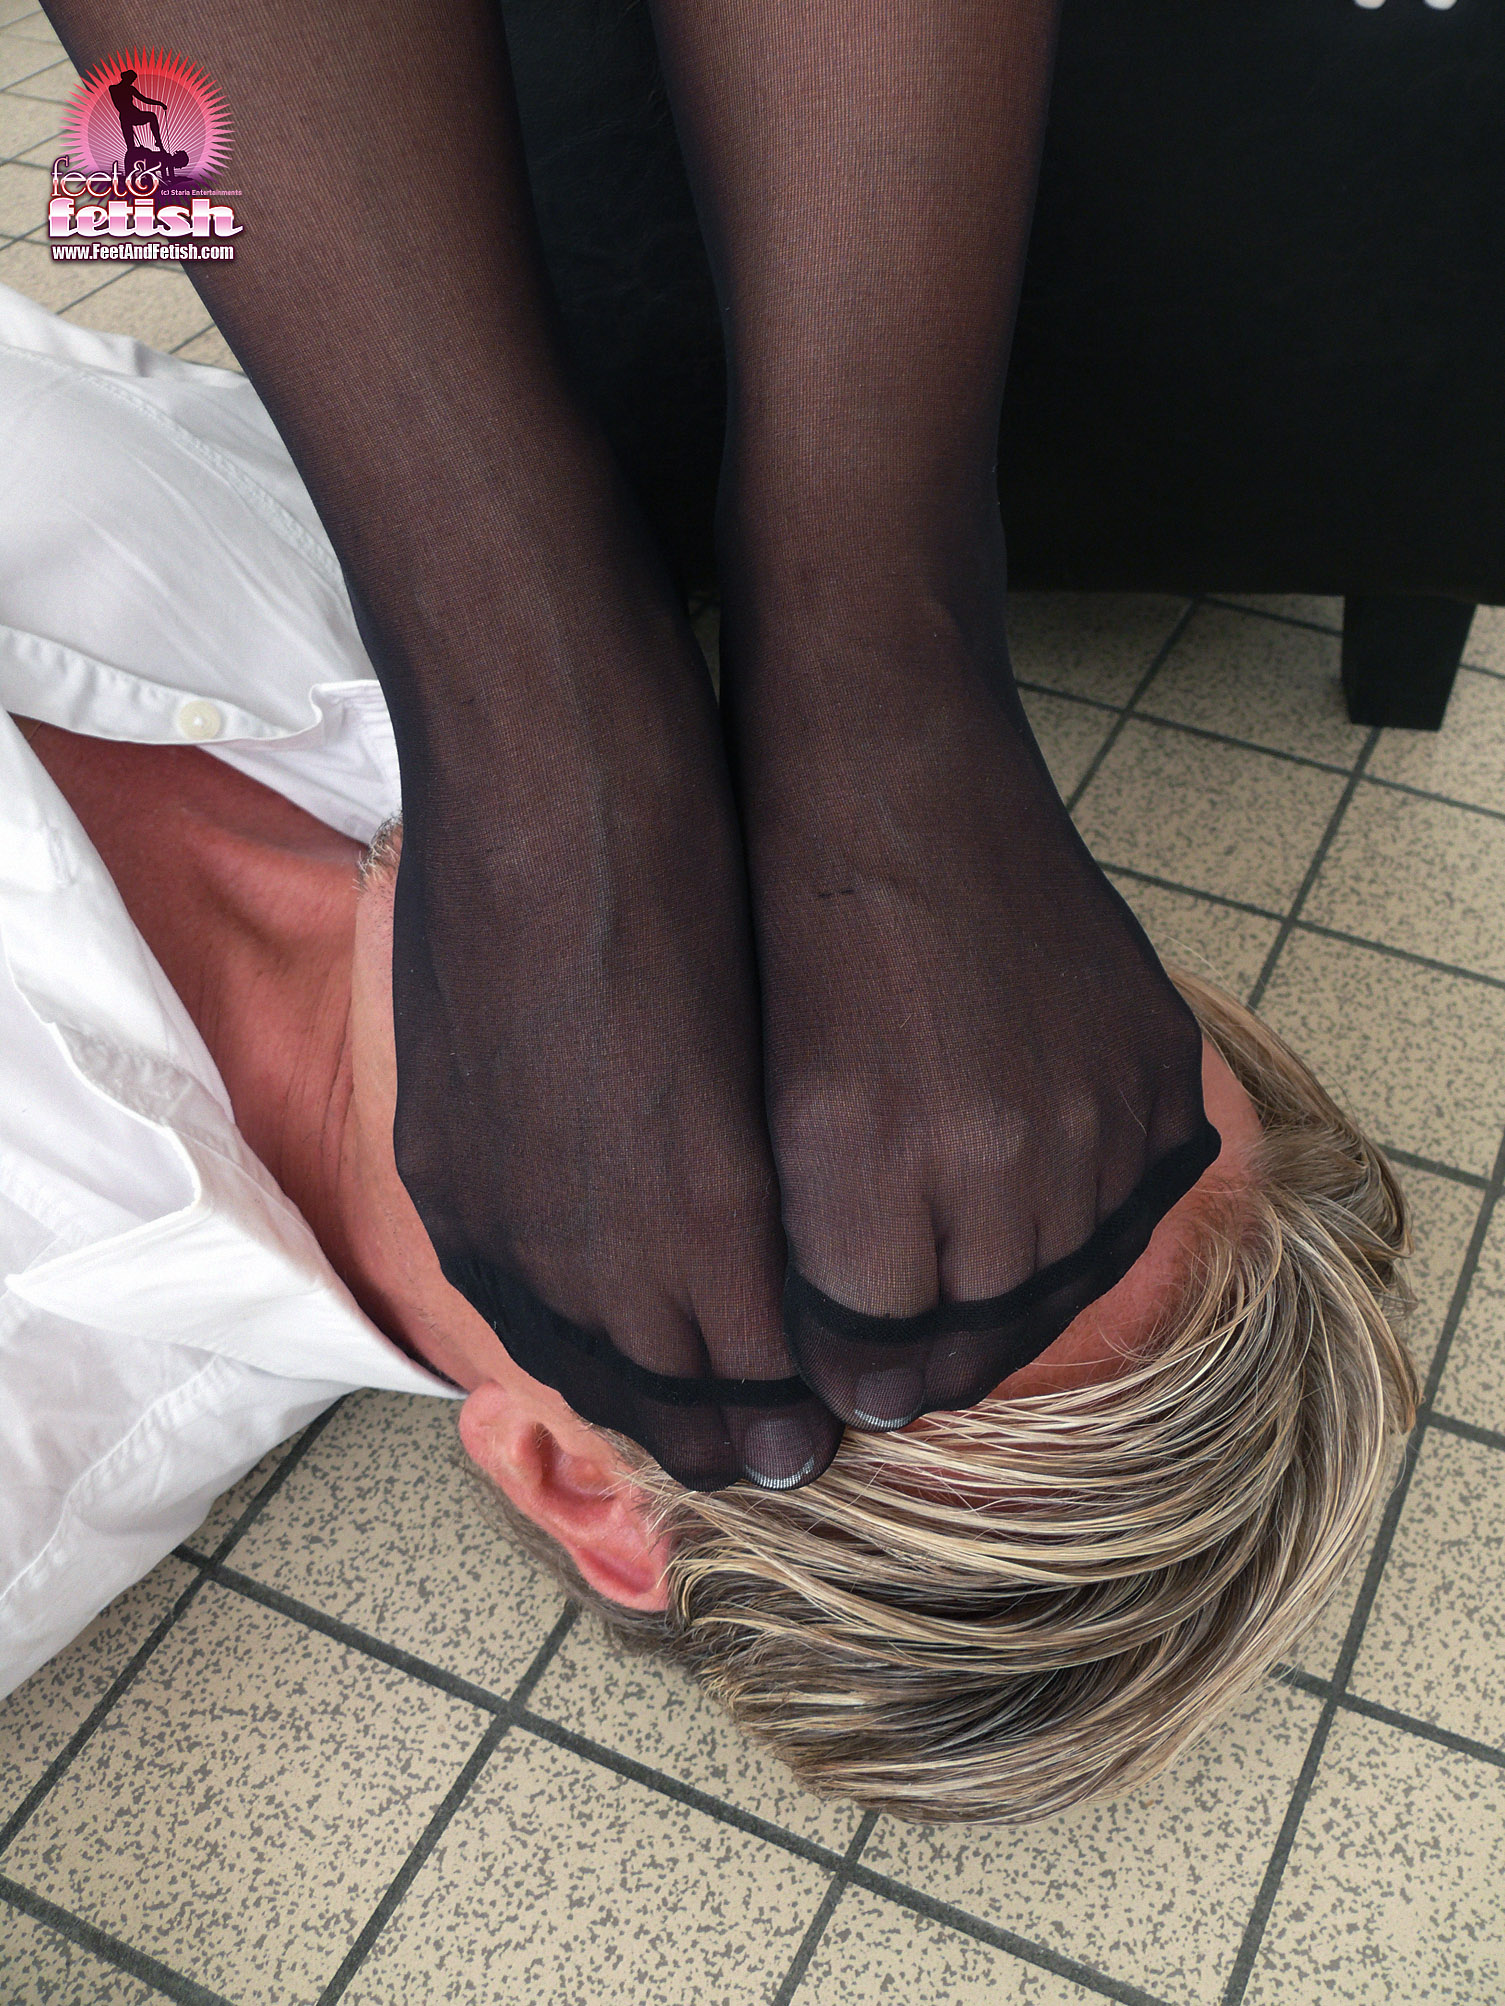 image Feet worship mistress nicole in flipflops